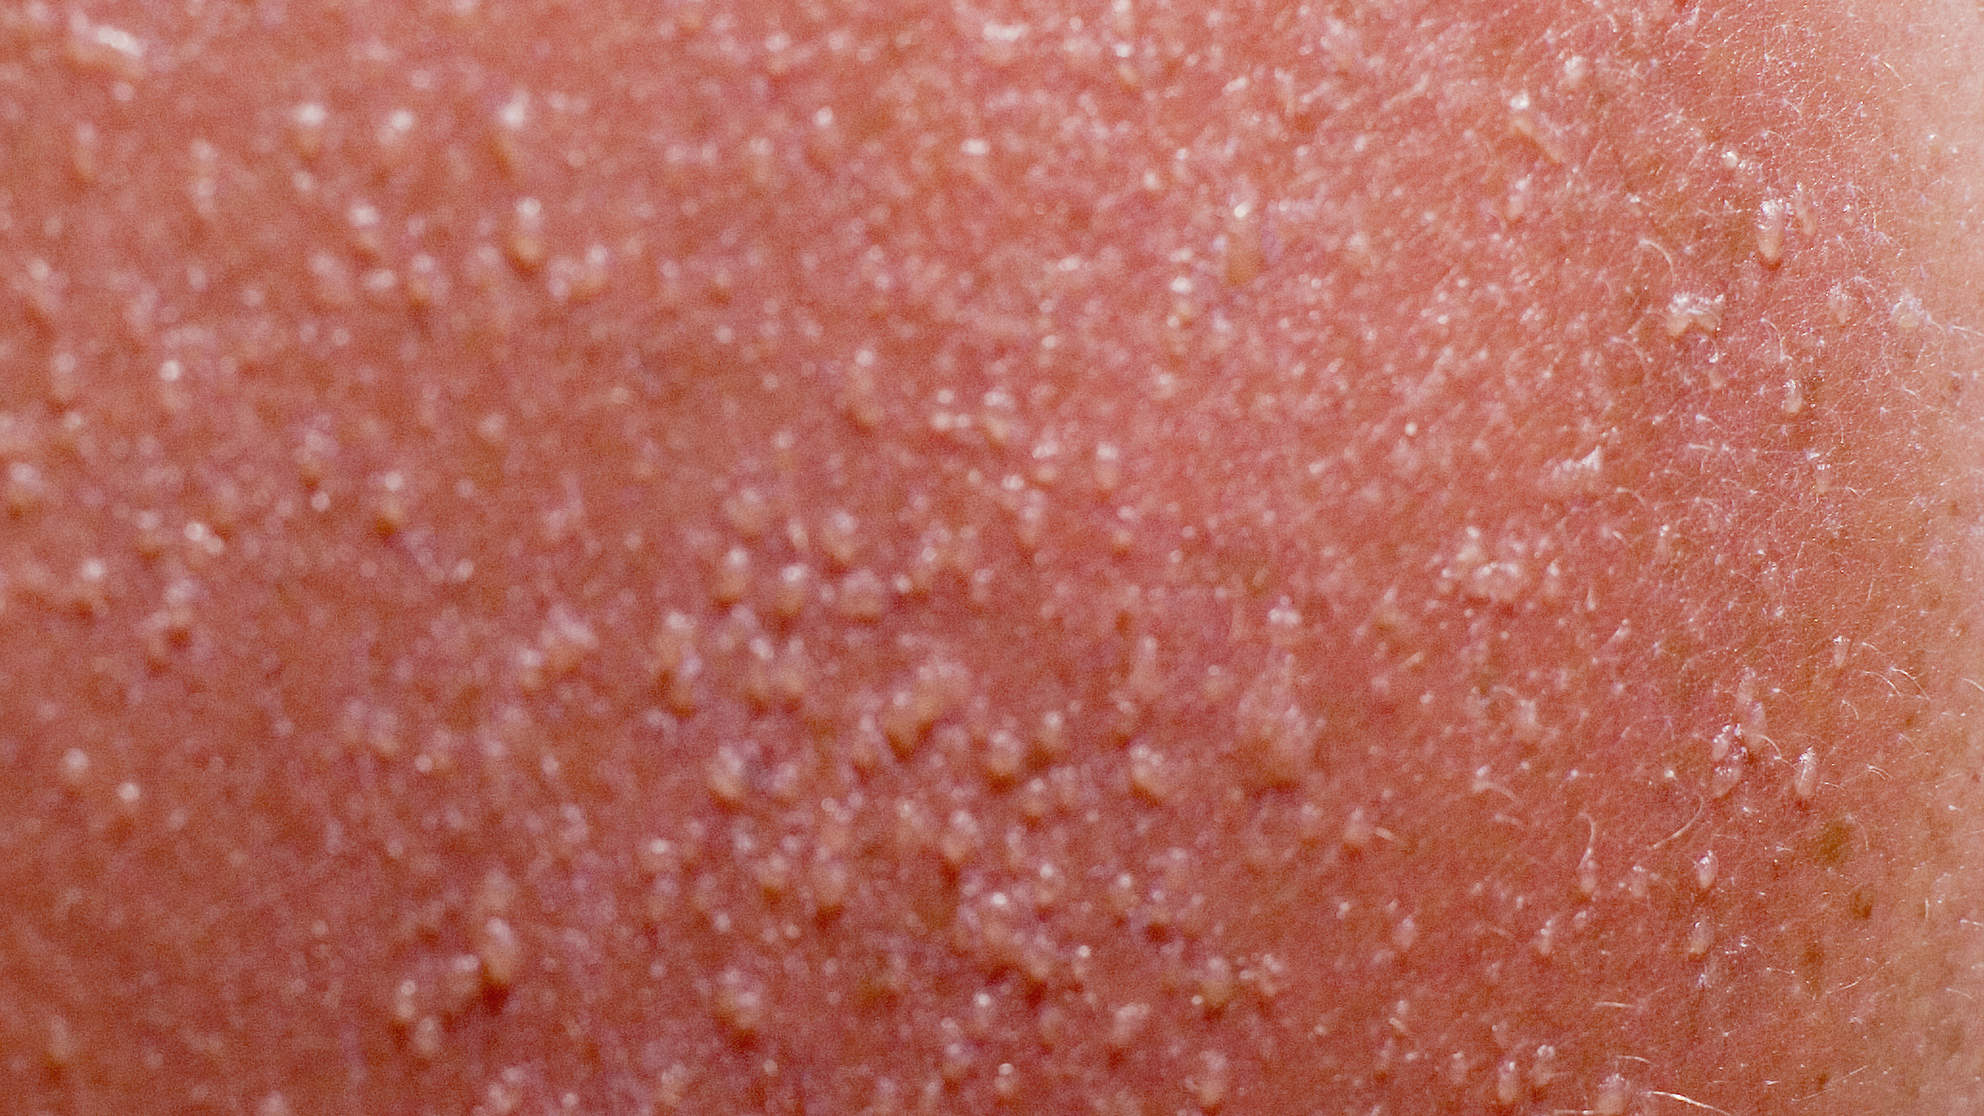 What Exactly Is Sun Poisoning–and How Do You Make Sure It Doesn't Happen to You?